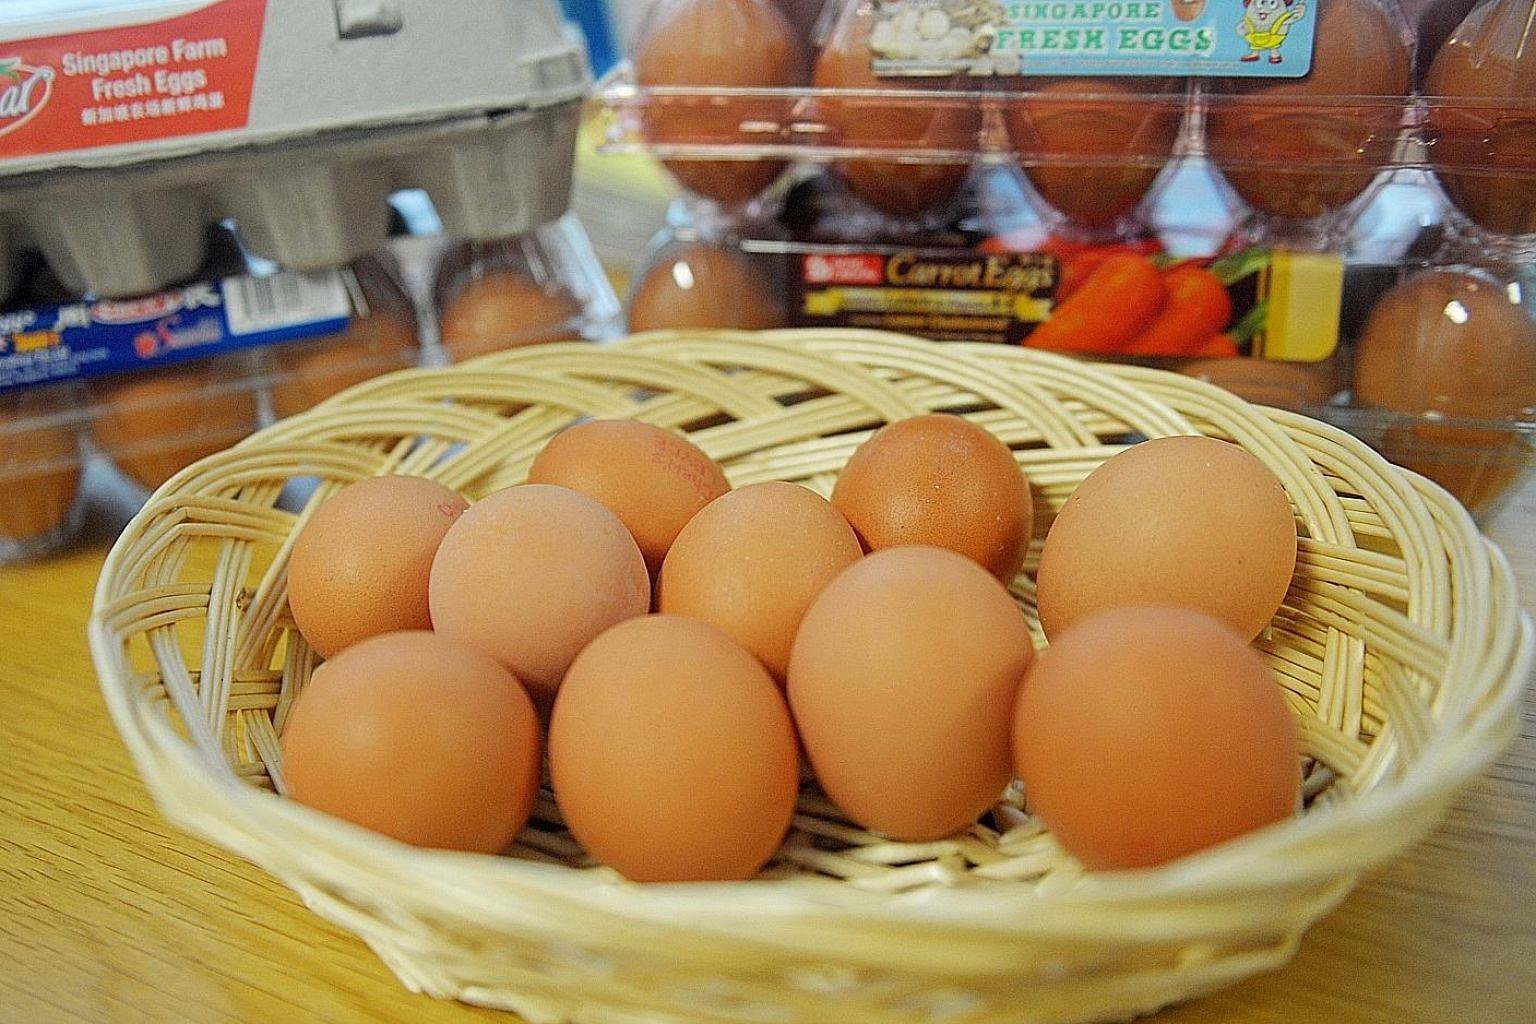 An egg is an egg, but some have higher concentrations of certain nutrients as the mother hens, known as layers, are fed a value-added diet.